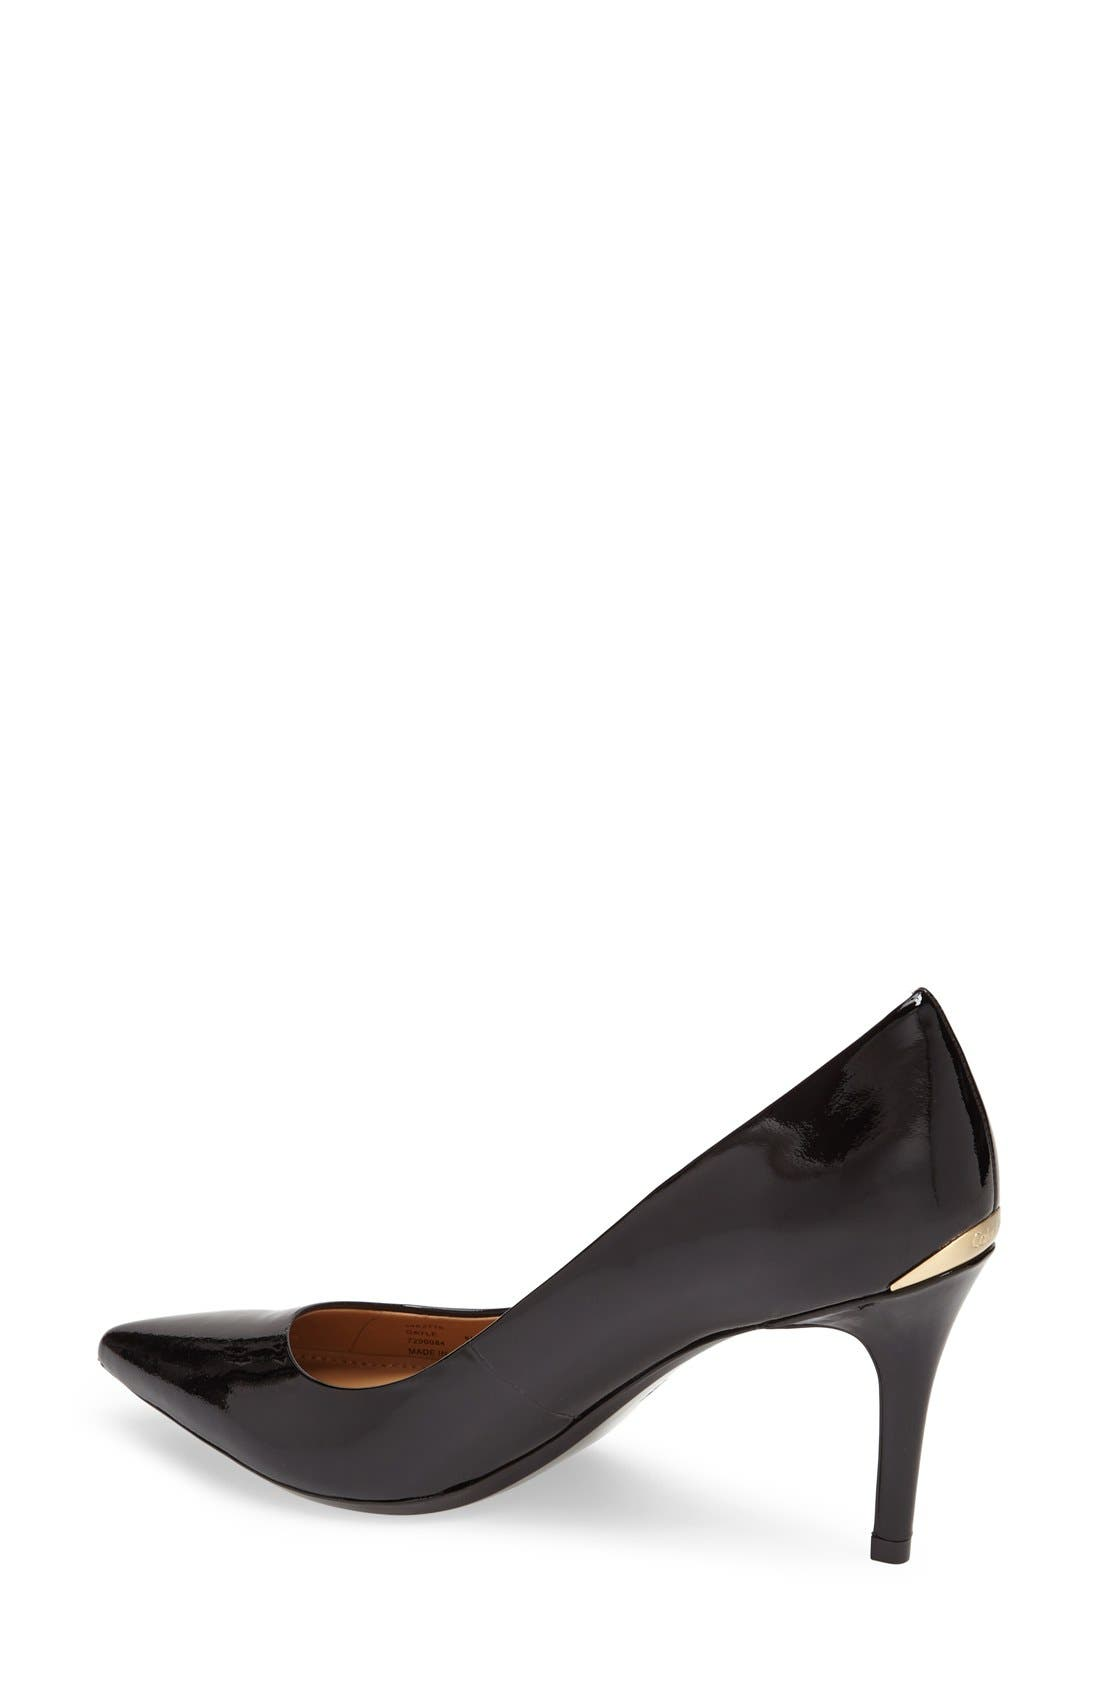 'Gayle' Pointy Toe Pump,                             Alternate thumbnail 6, color,                             BLACK PATENT